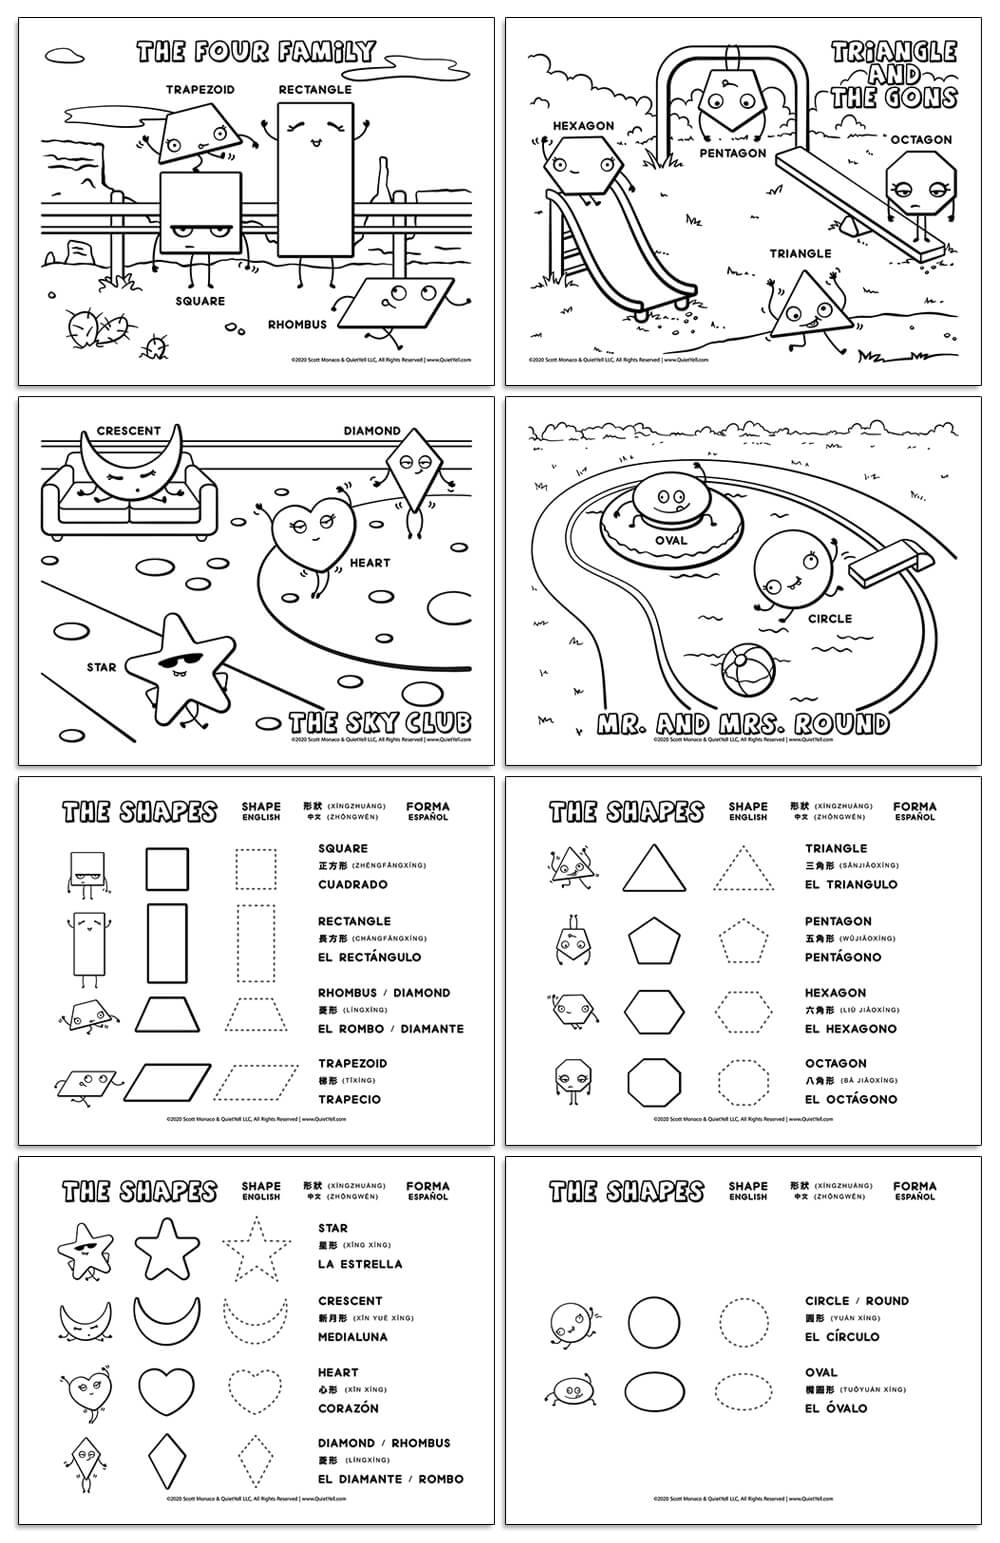 Coloring Activity Sheet to Learn Shapes in English, Chinese, and Spanish by Scott Monaco of QuietYell LLC | www.QuietYell.com